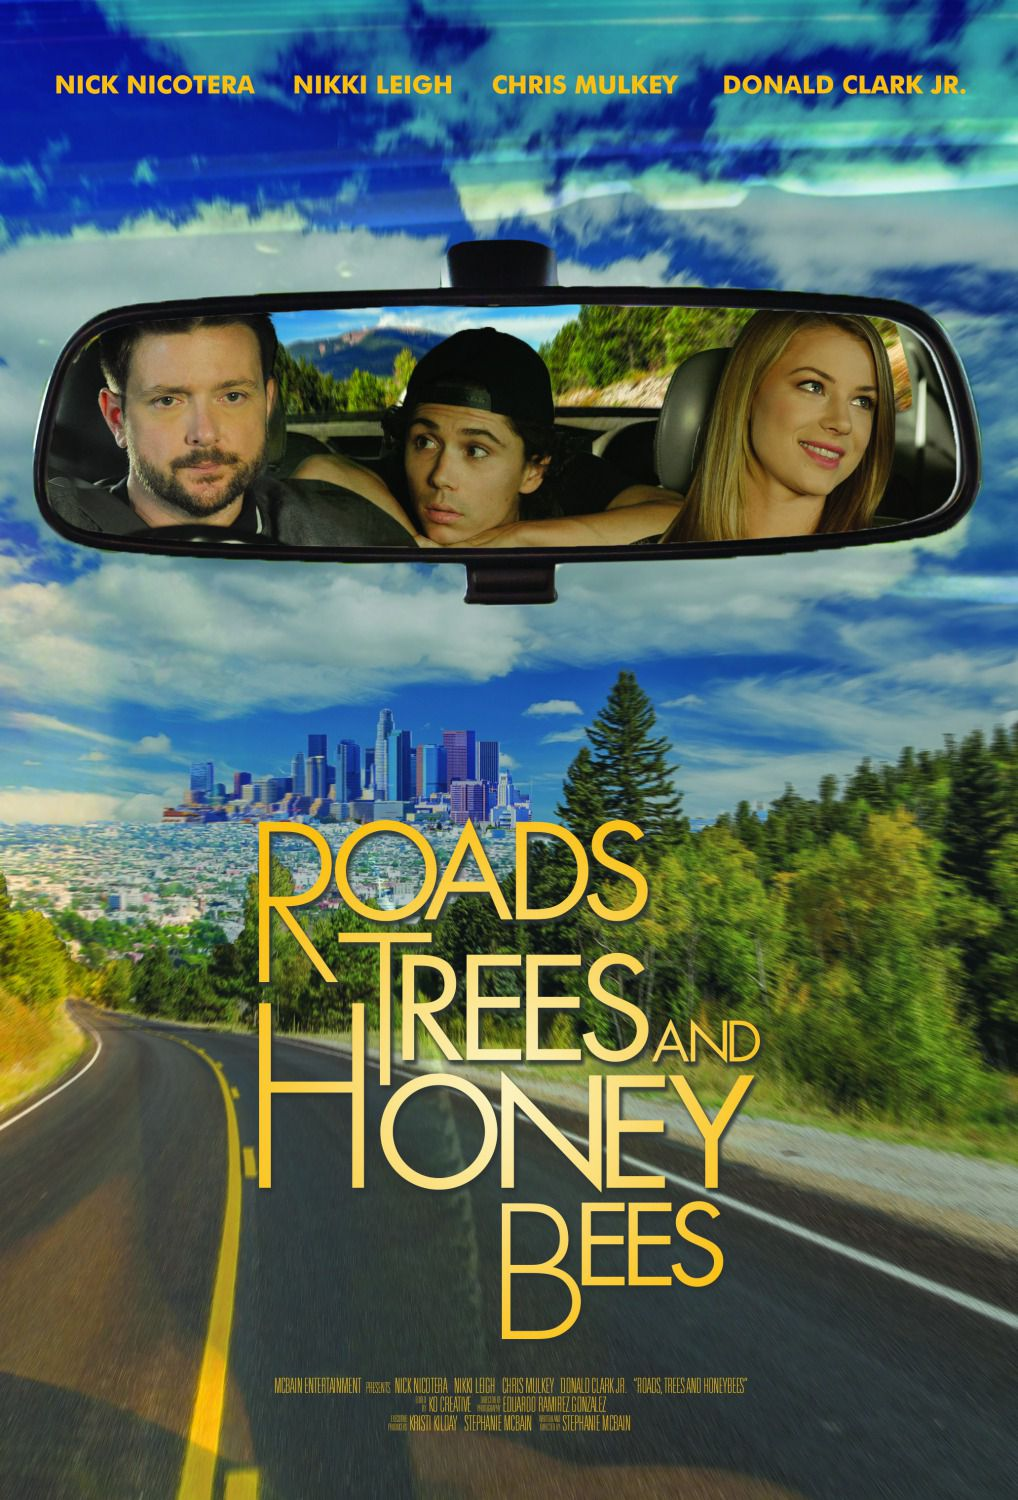 Roads Trees and Honey Bees